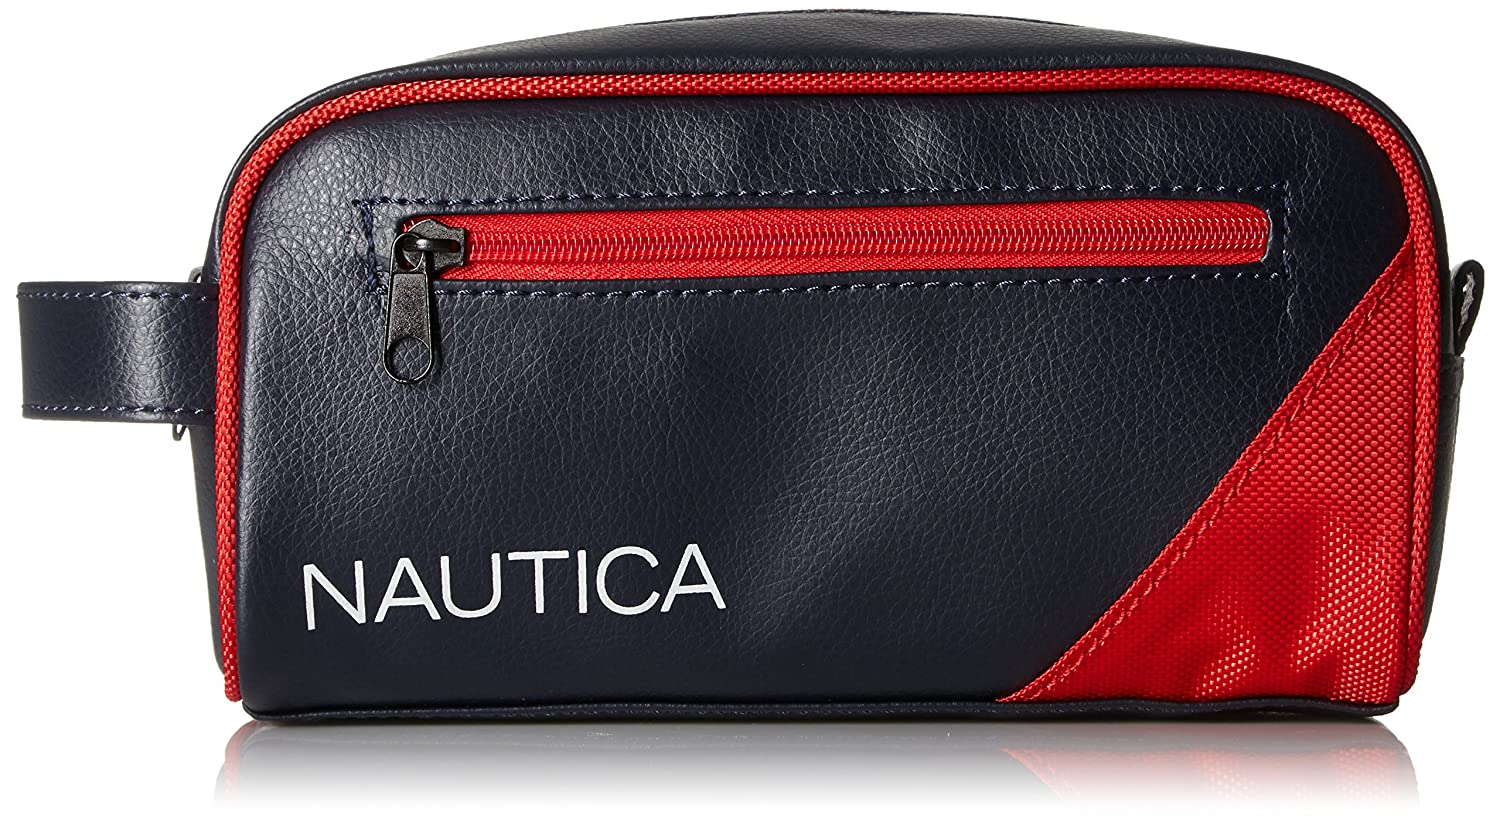 Nautica Mens Top Zip Travel Kit Toiletry Bag Organizer